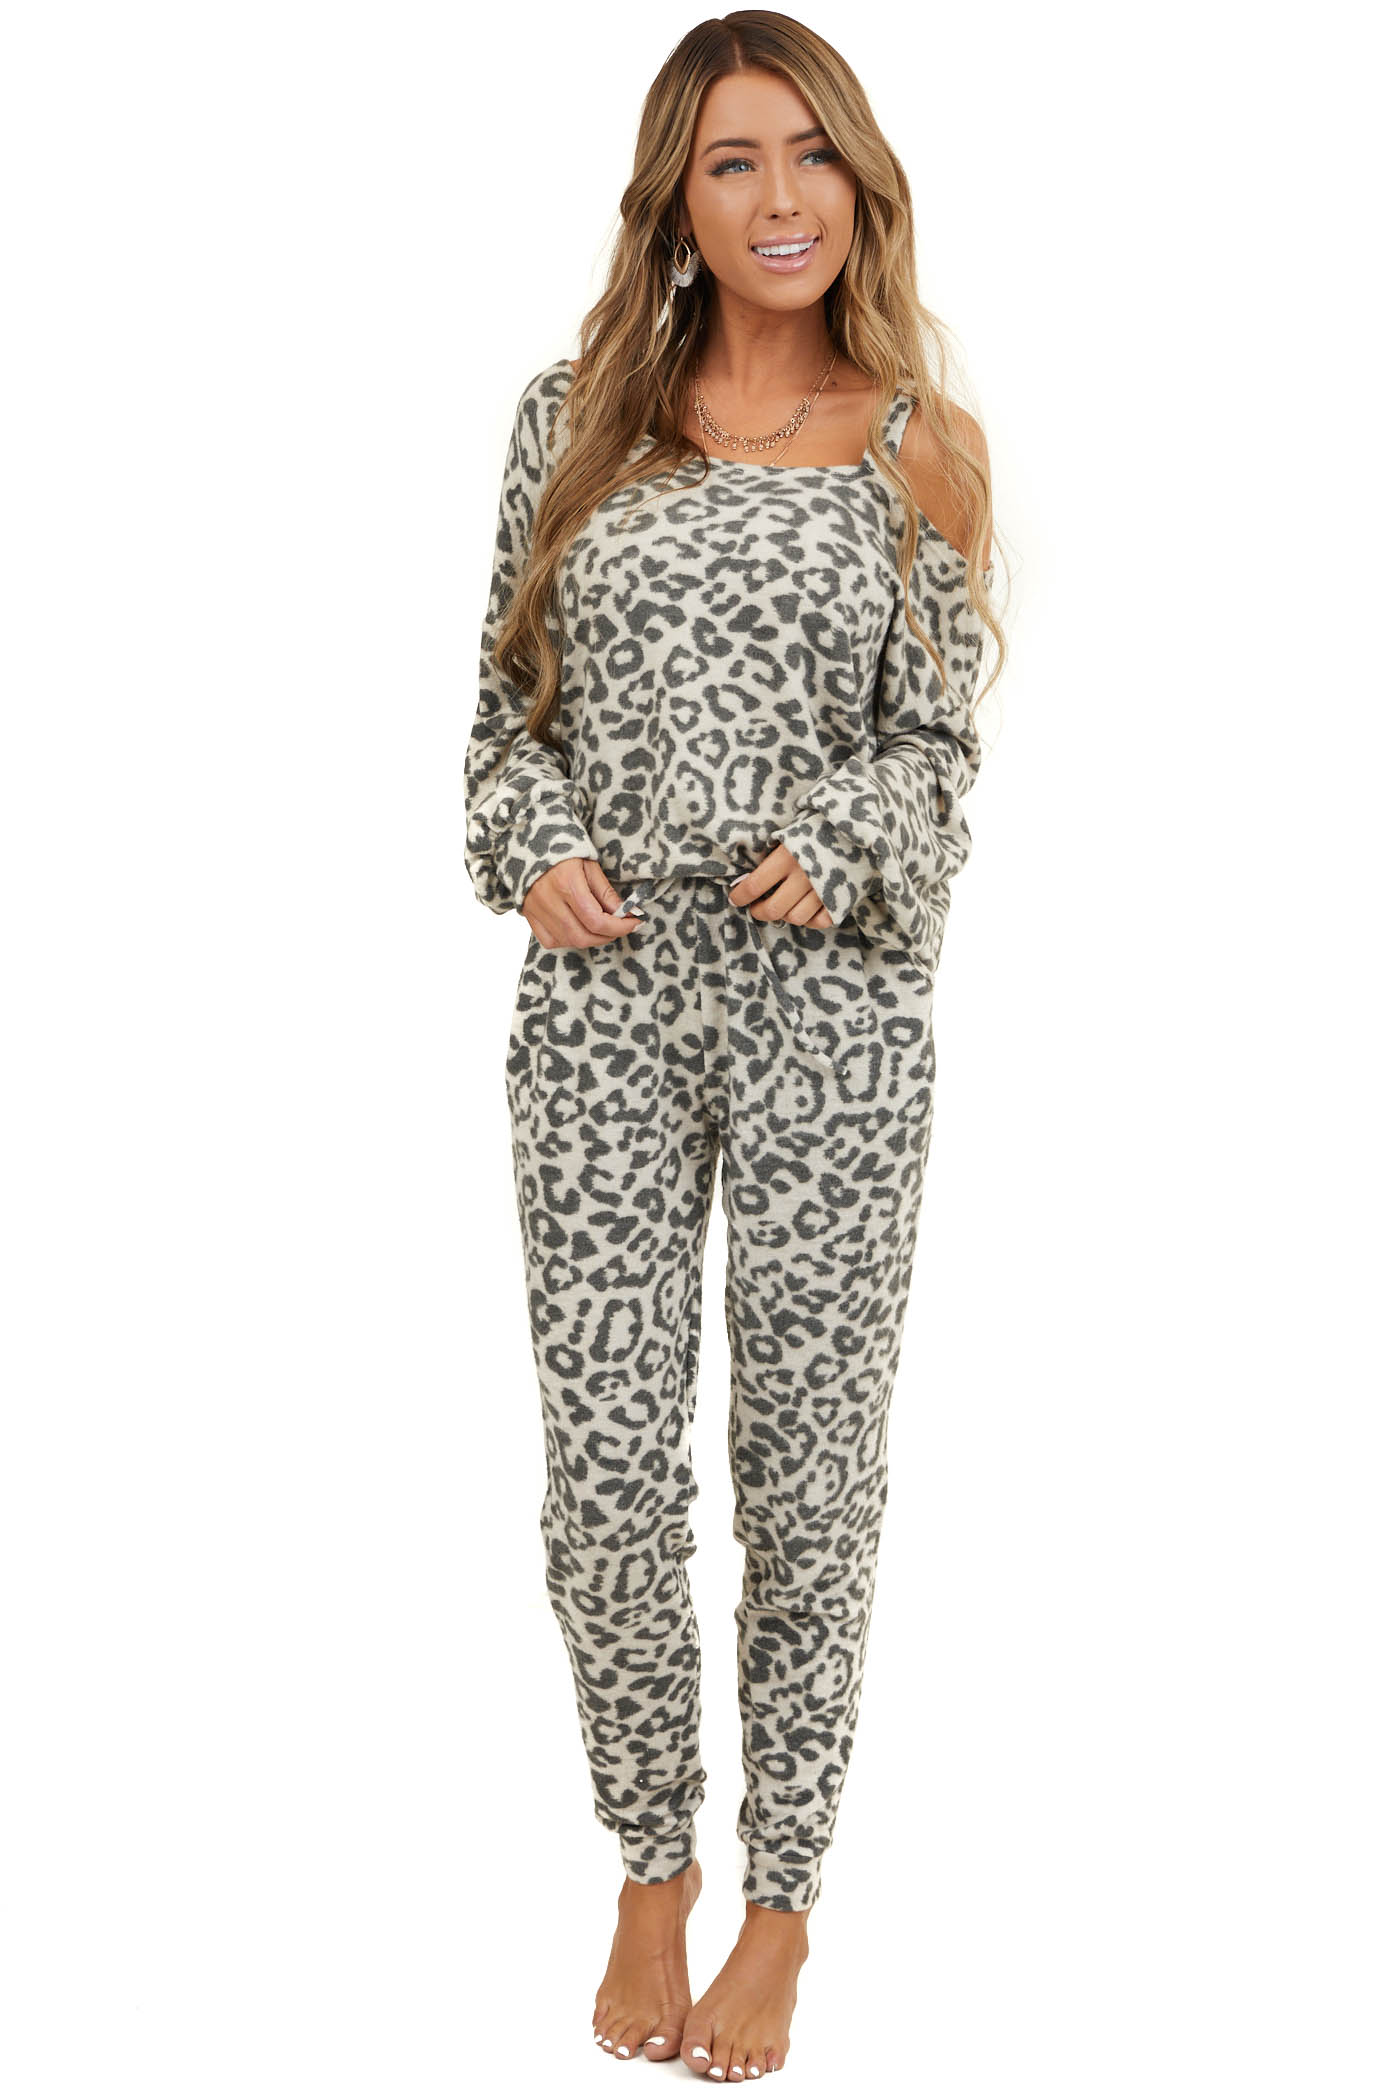 Cream and Charcoal Leopard Print Super Soft Long Sleeve Top